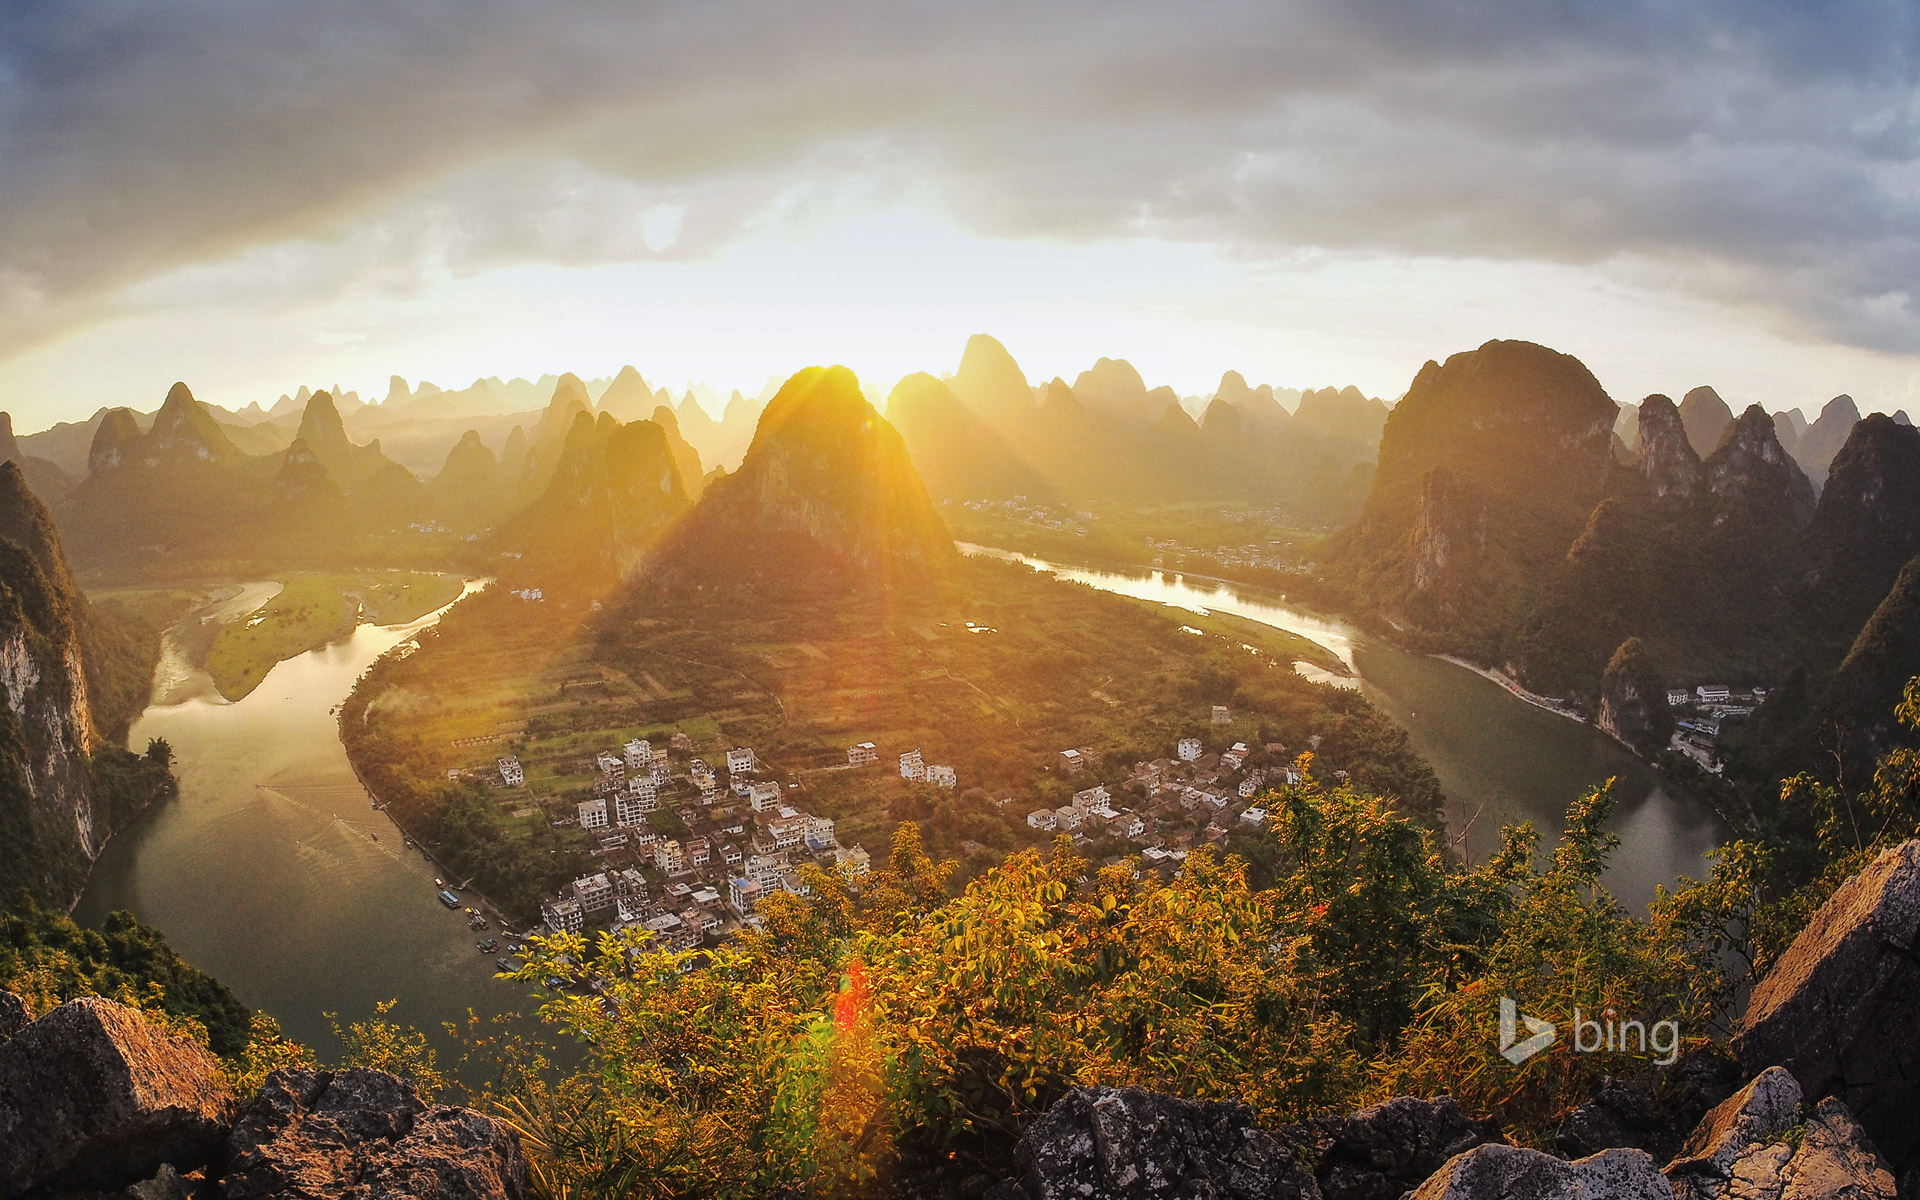 Xingping on the Li River in Guangxi, China